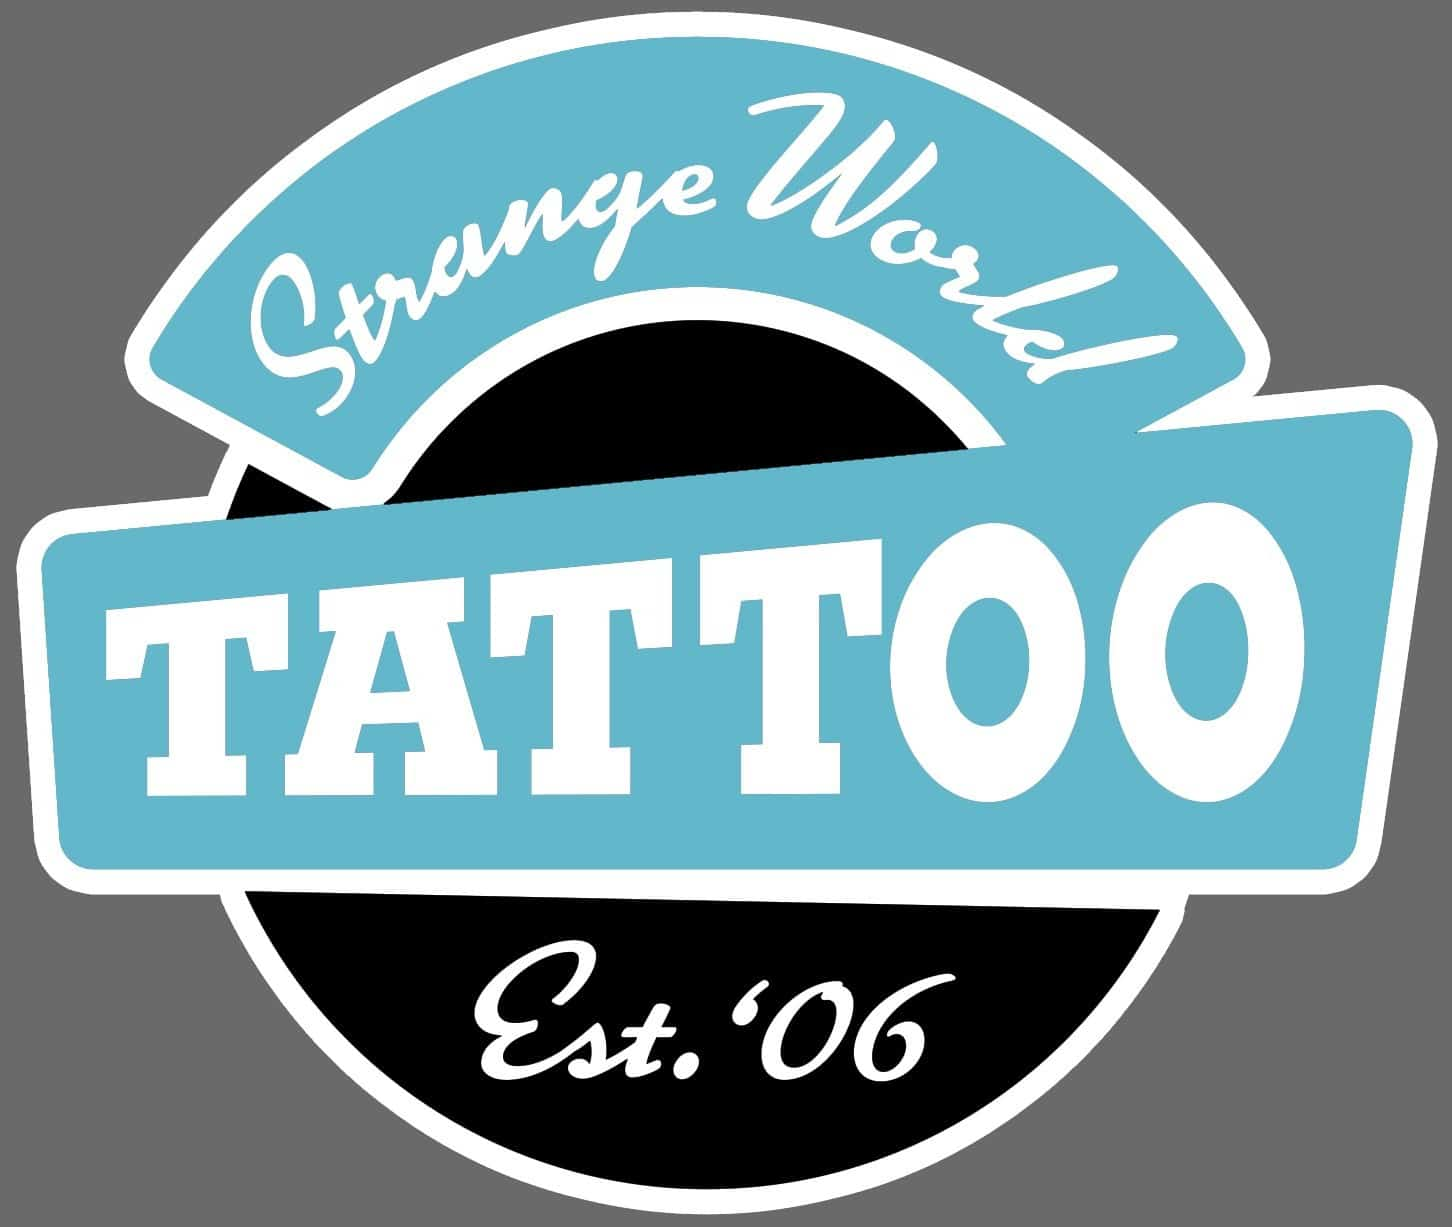 Strange World Tattoo Shop